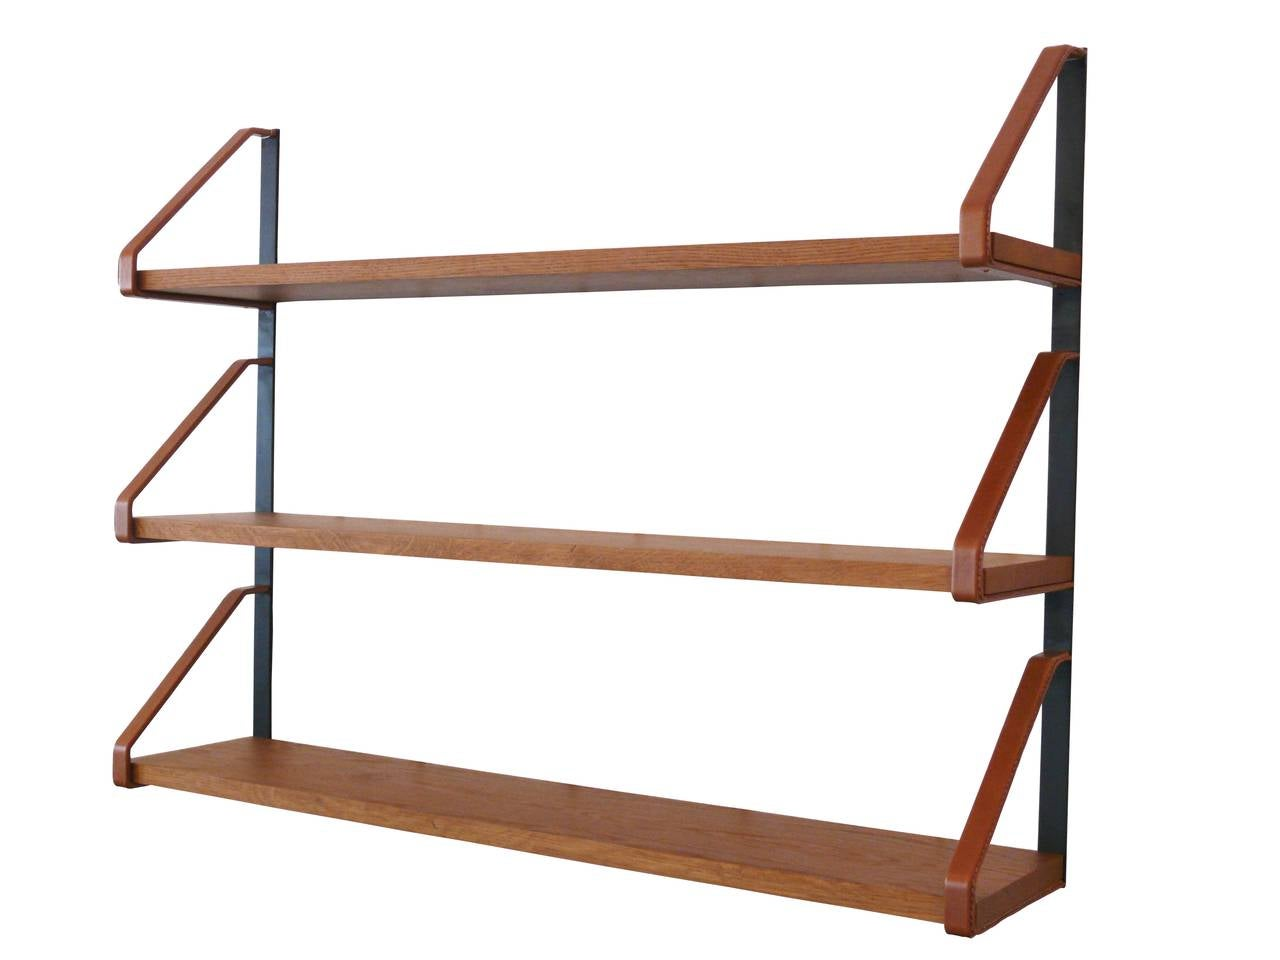 """Handsome oak and leather bookshelf in the style of Jacques Adnet. Newly produced after a vintage Adnet bookshelf. Custom iron frame with saddle leather wrapped brackets and signature contrast stitching. 1"""" thick oak shelves and brass hardware."""